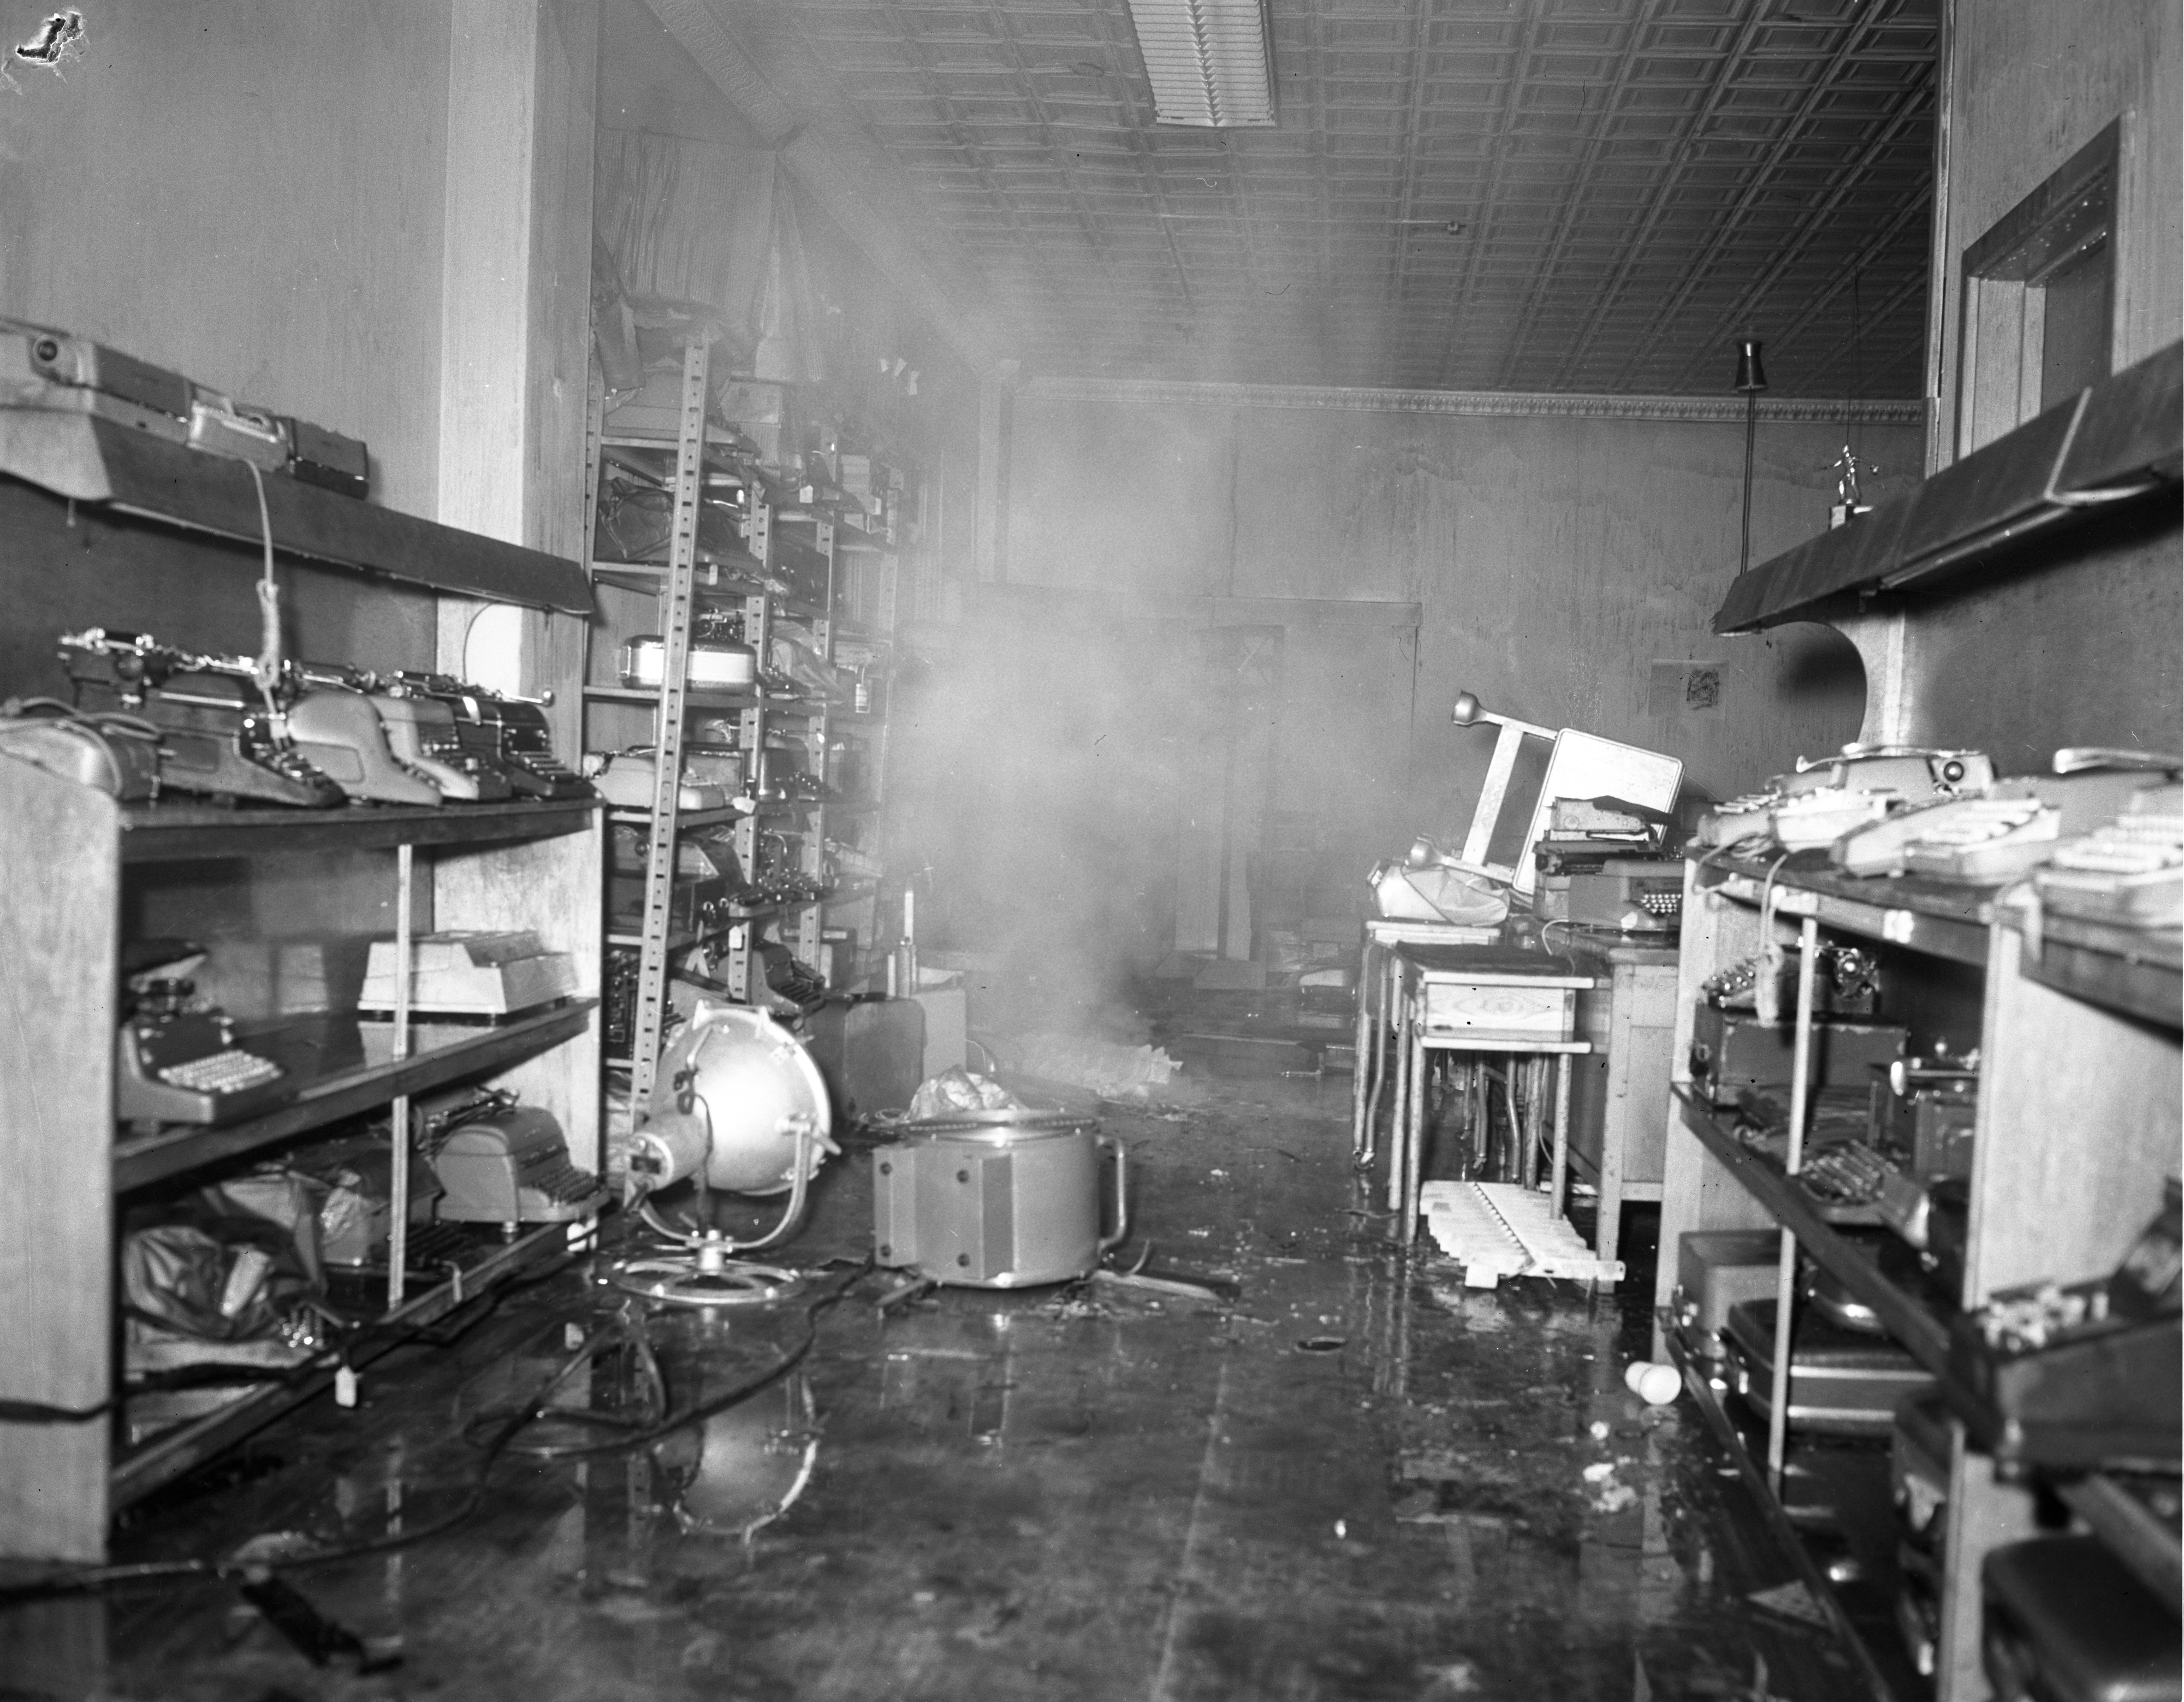 Ann Arbor Office Machines Inventory Destroyed In Fire, February 1961 image